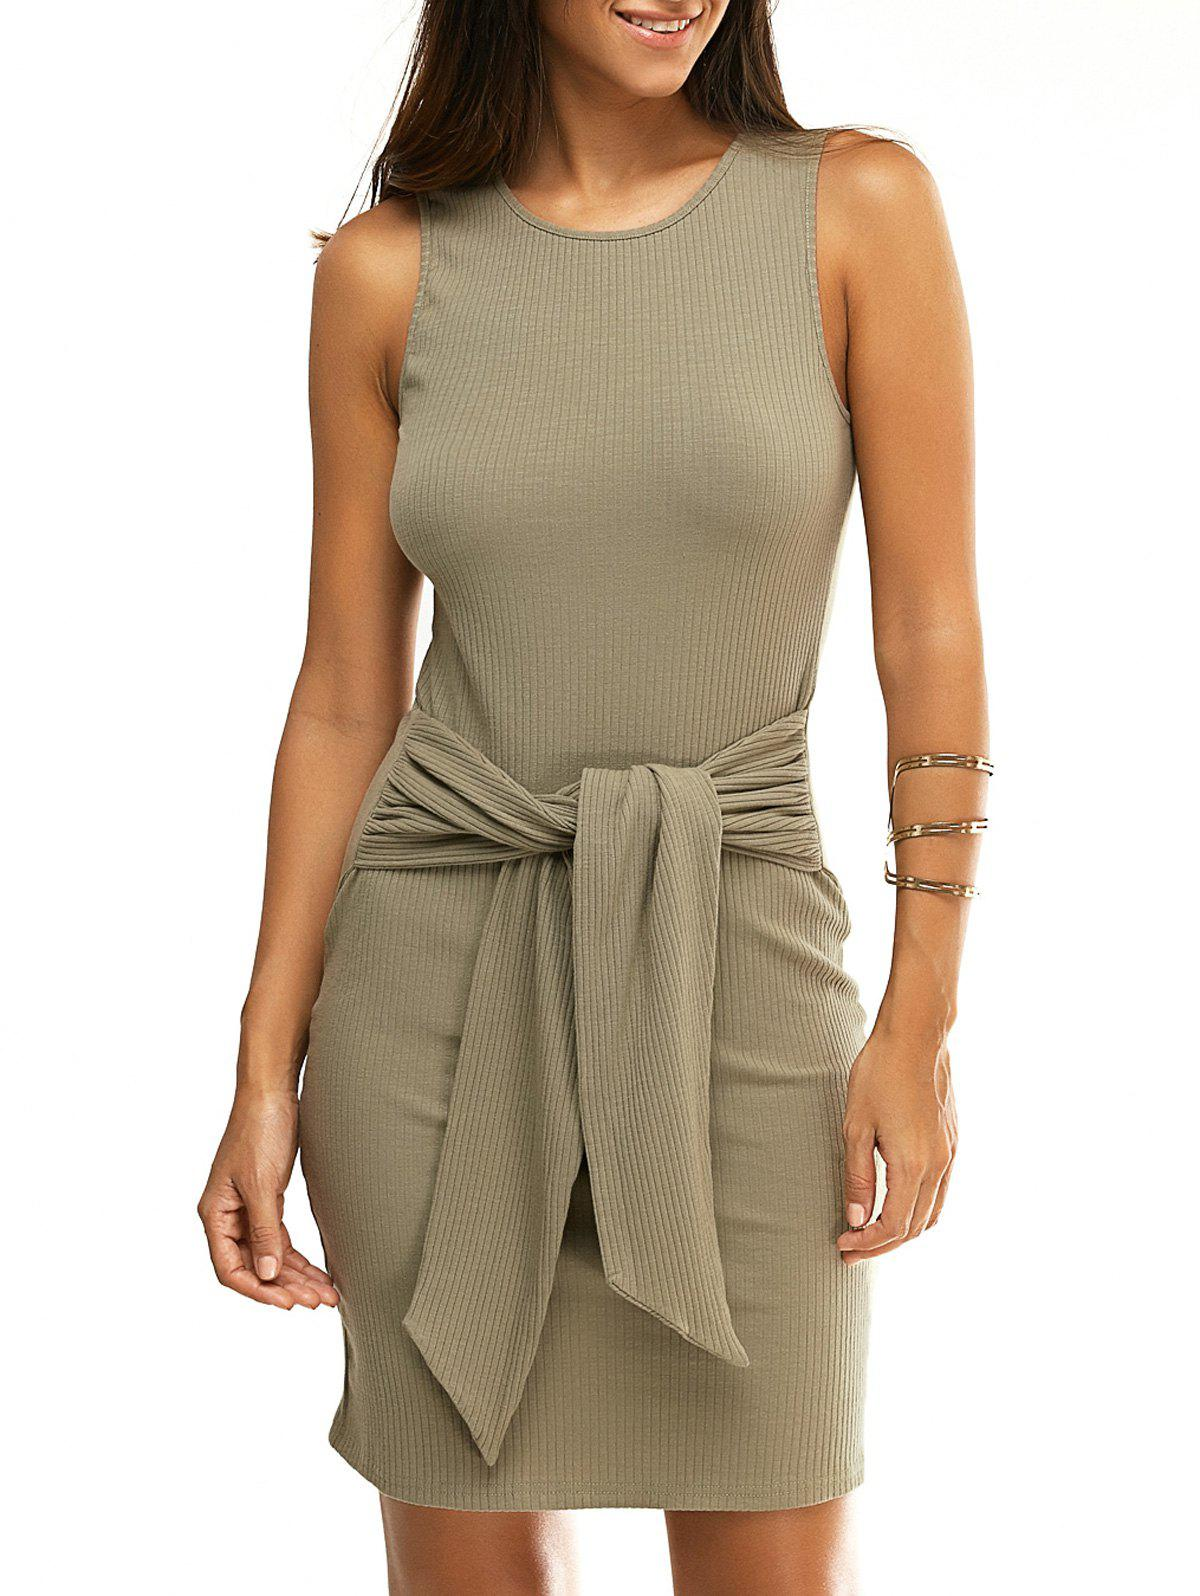 Fashionable Sleeveless Round Collar Pure Color Skinny Knotted Women's Dress